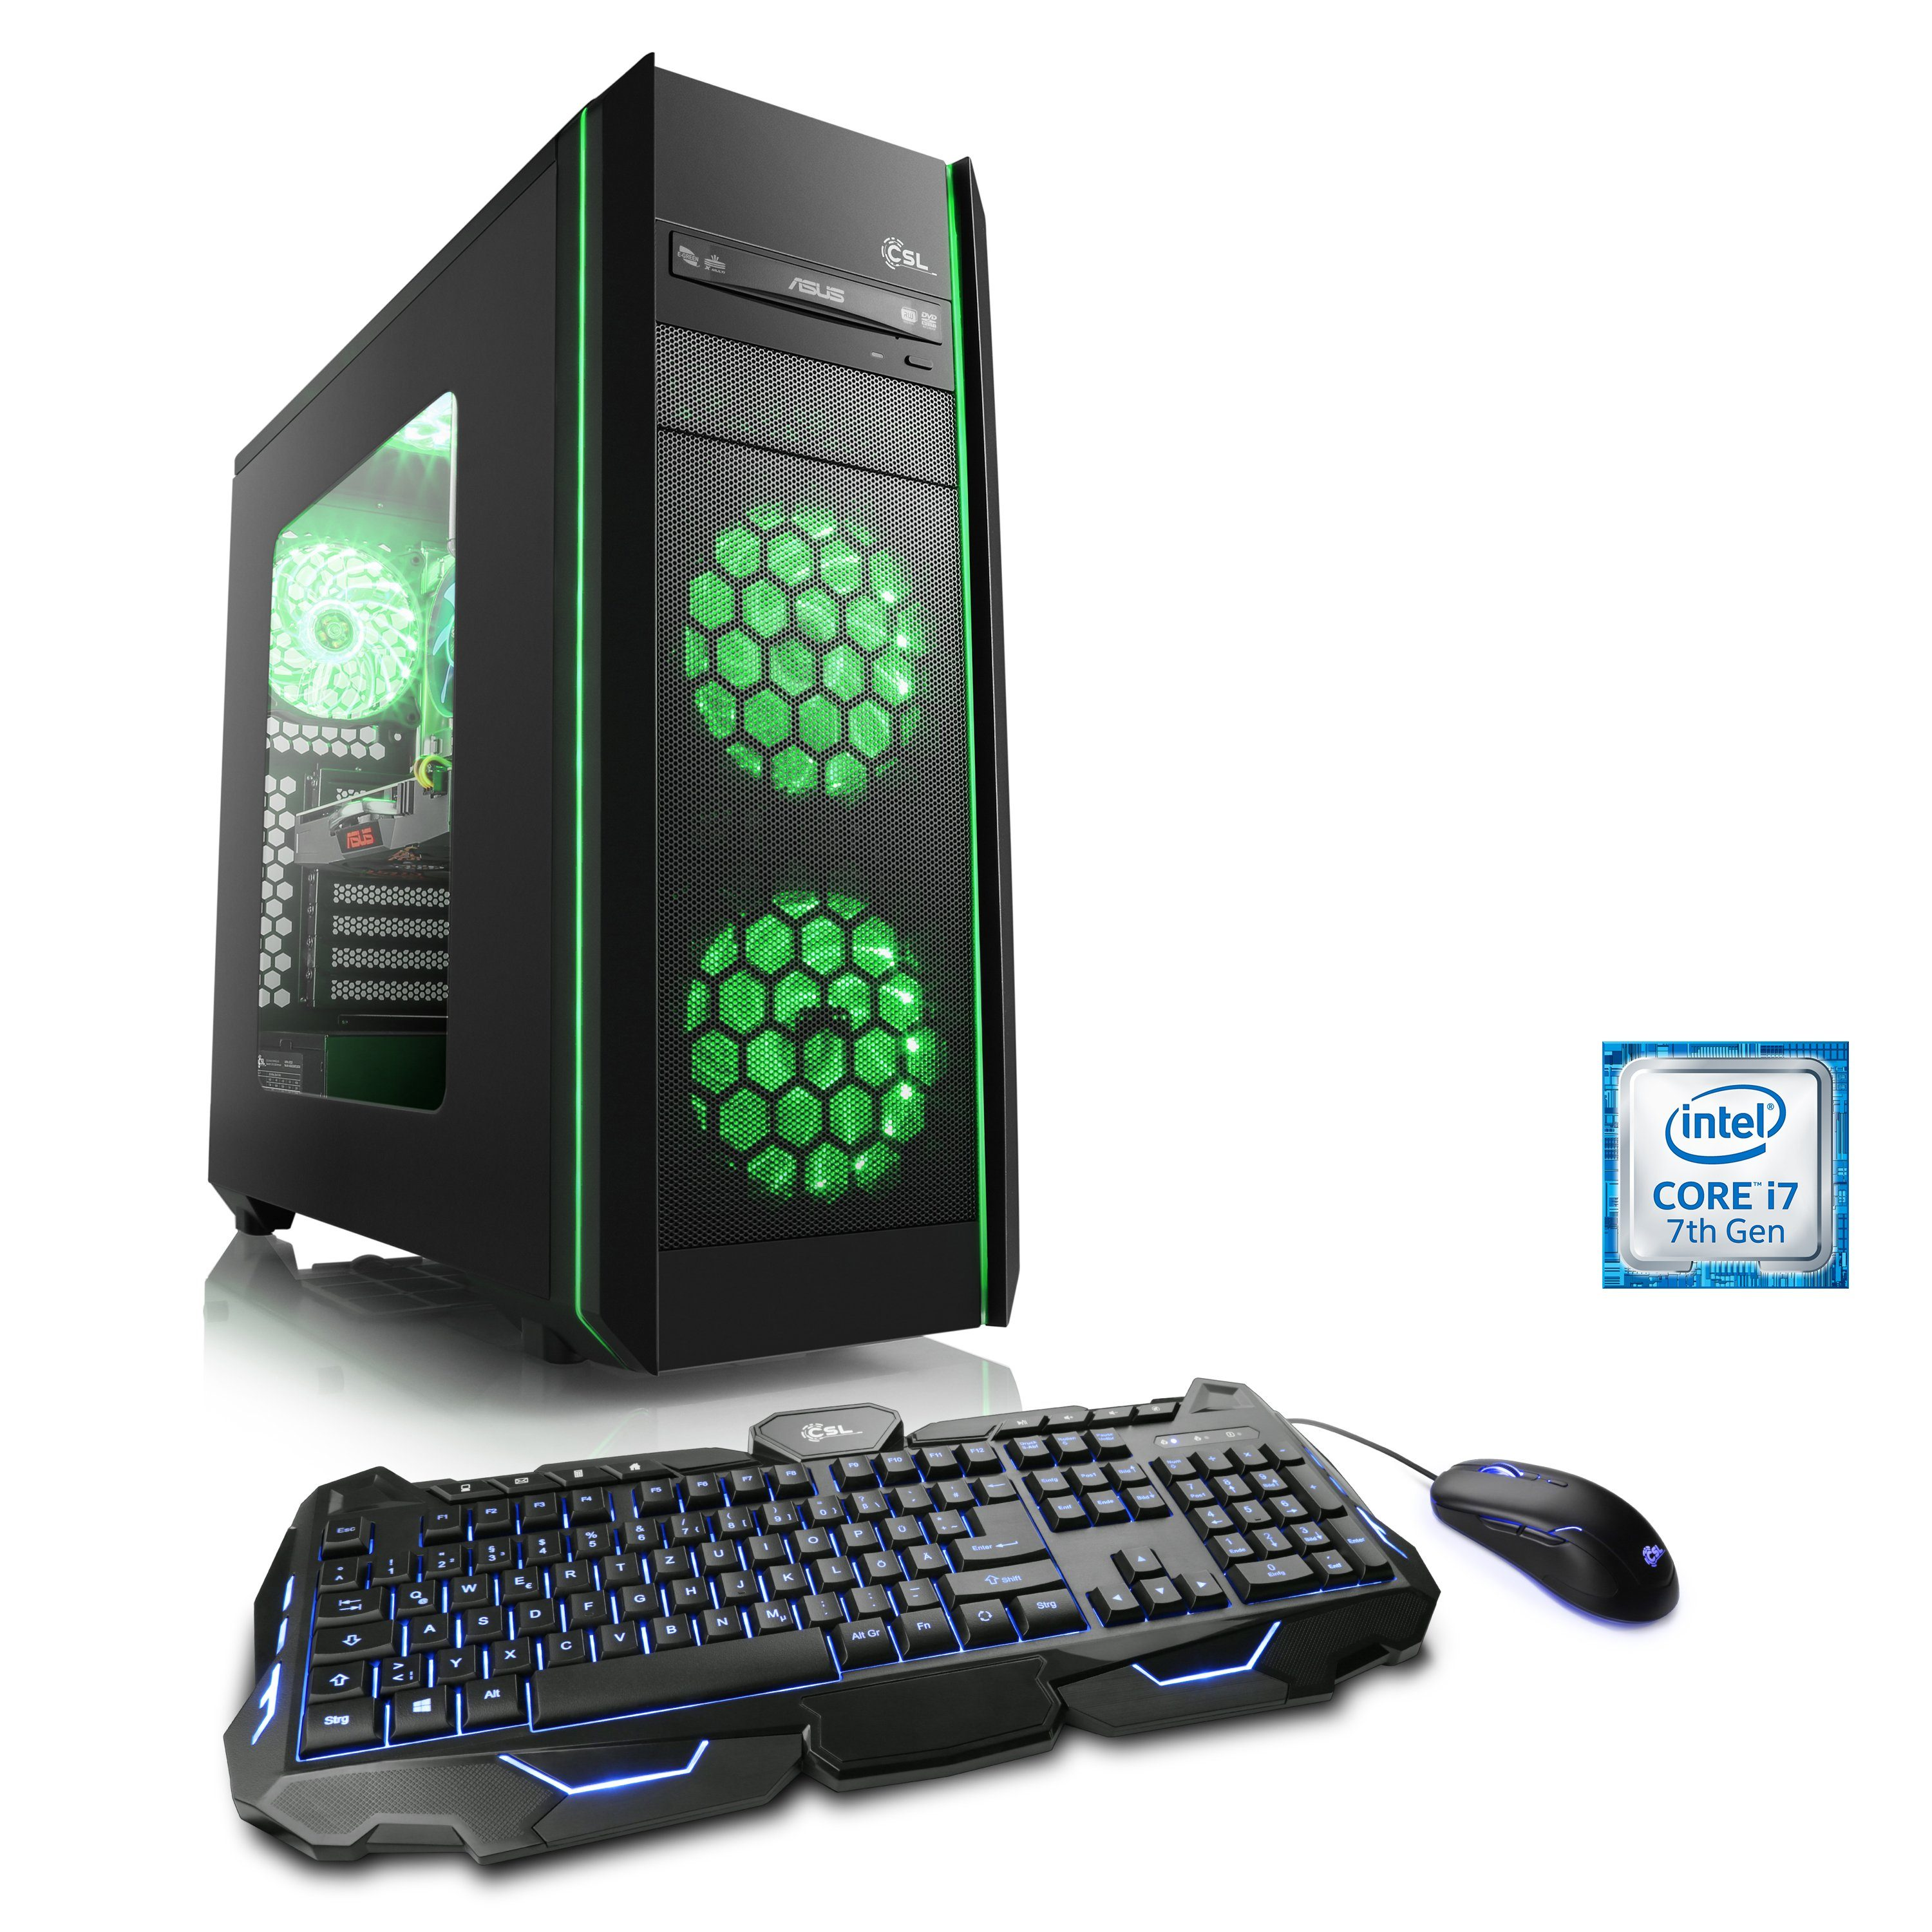 CSL Extreme Gaming PC | i7-7700K | GTX 1080 | 16GB DDR4 | 240GB SSD »Speed T7665 Windows 10 Home«